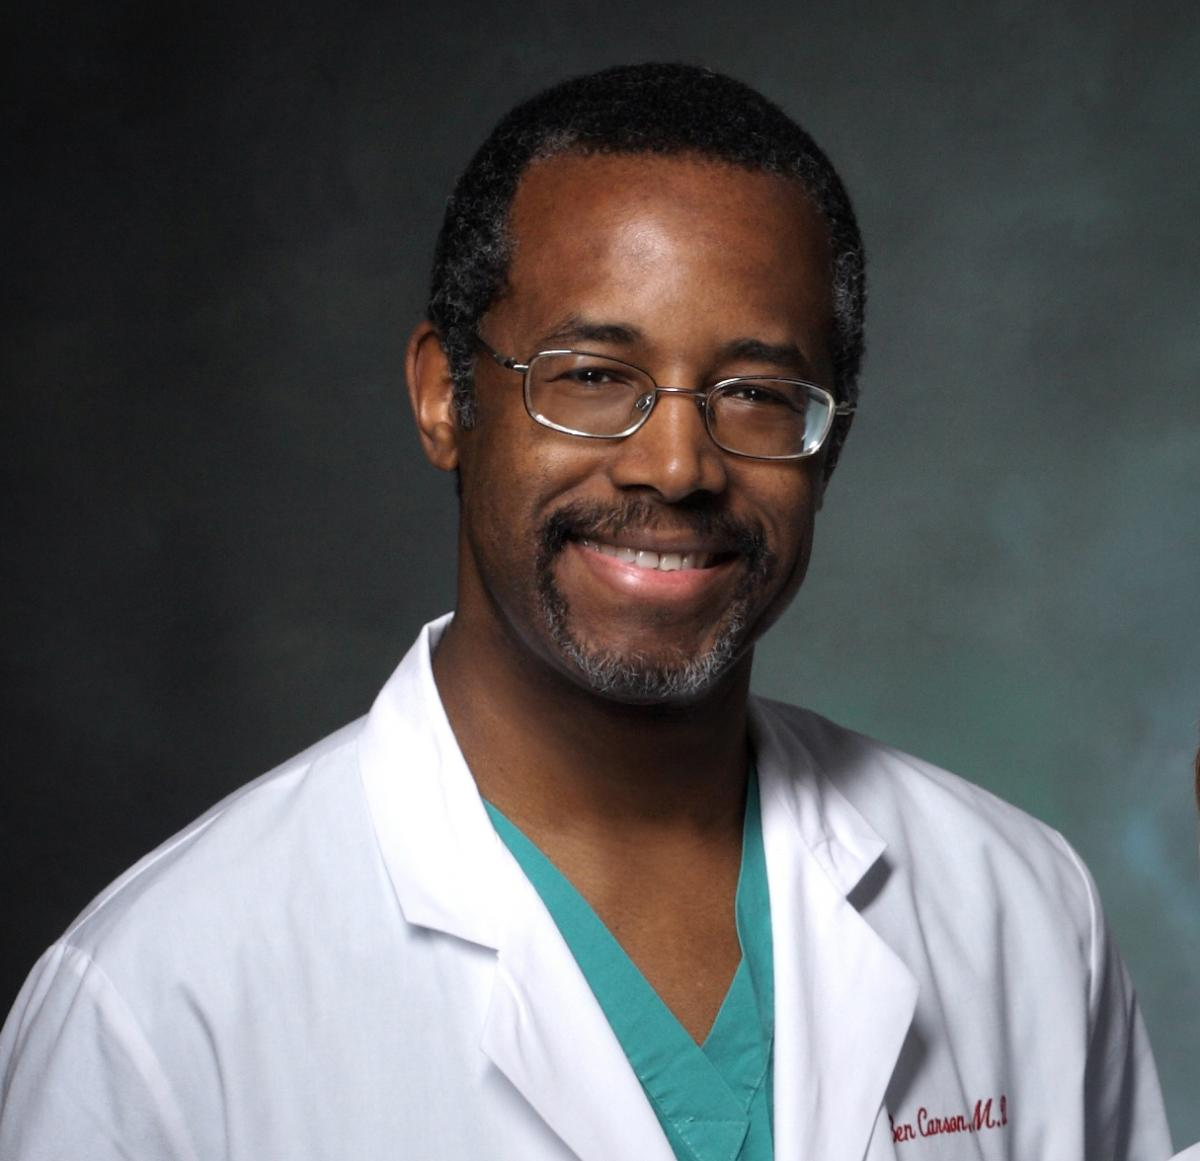 World Renowned Neurosurgeon to Speak at 'Man-Up' Conference | VI